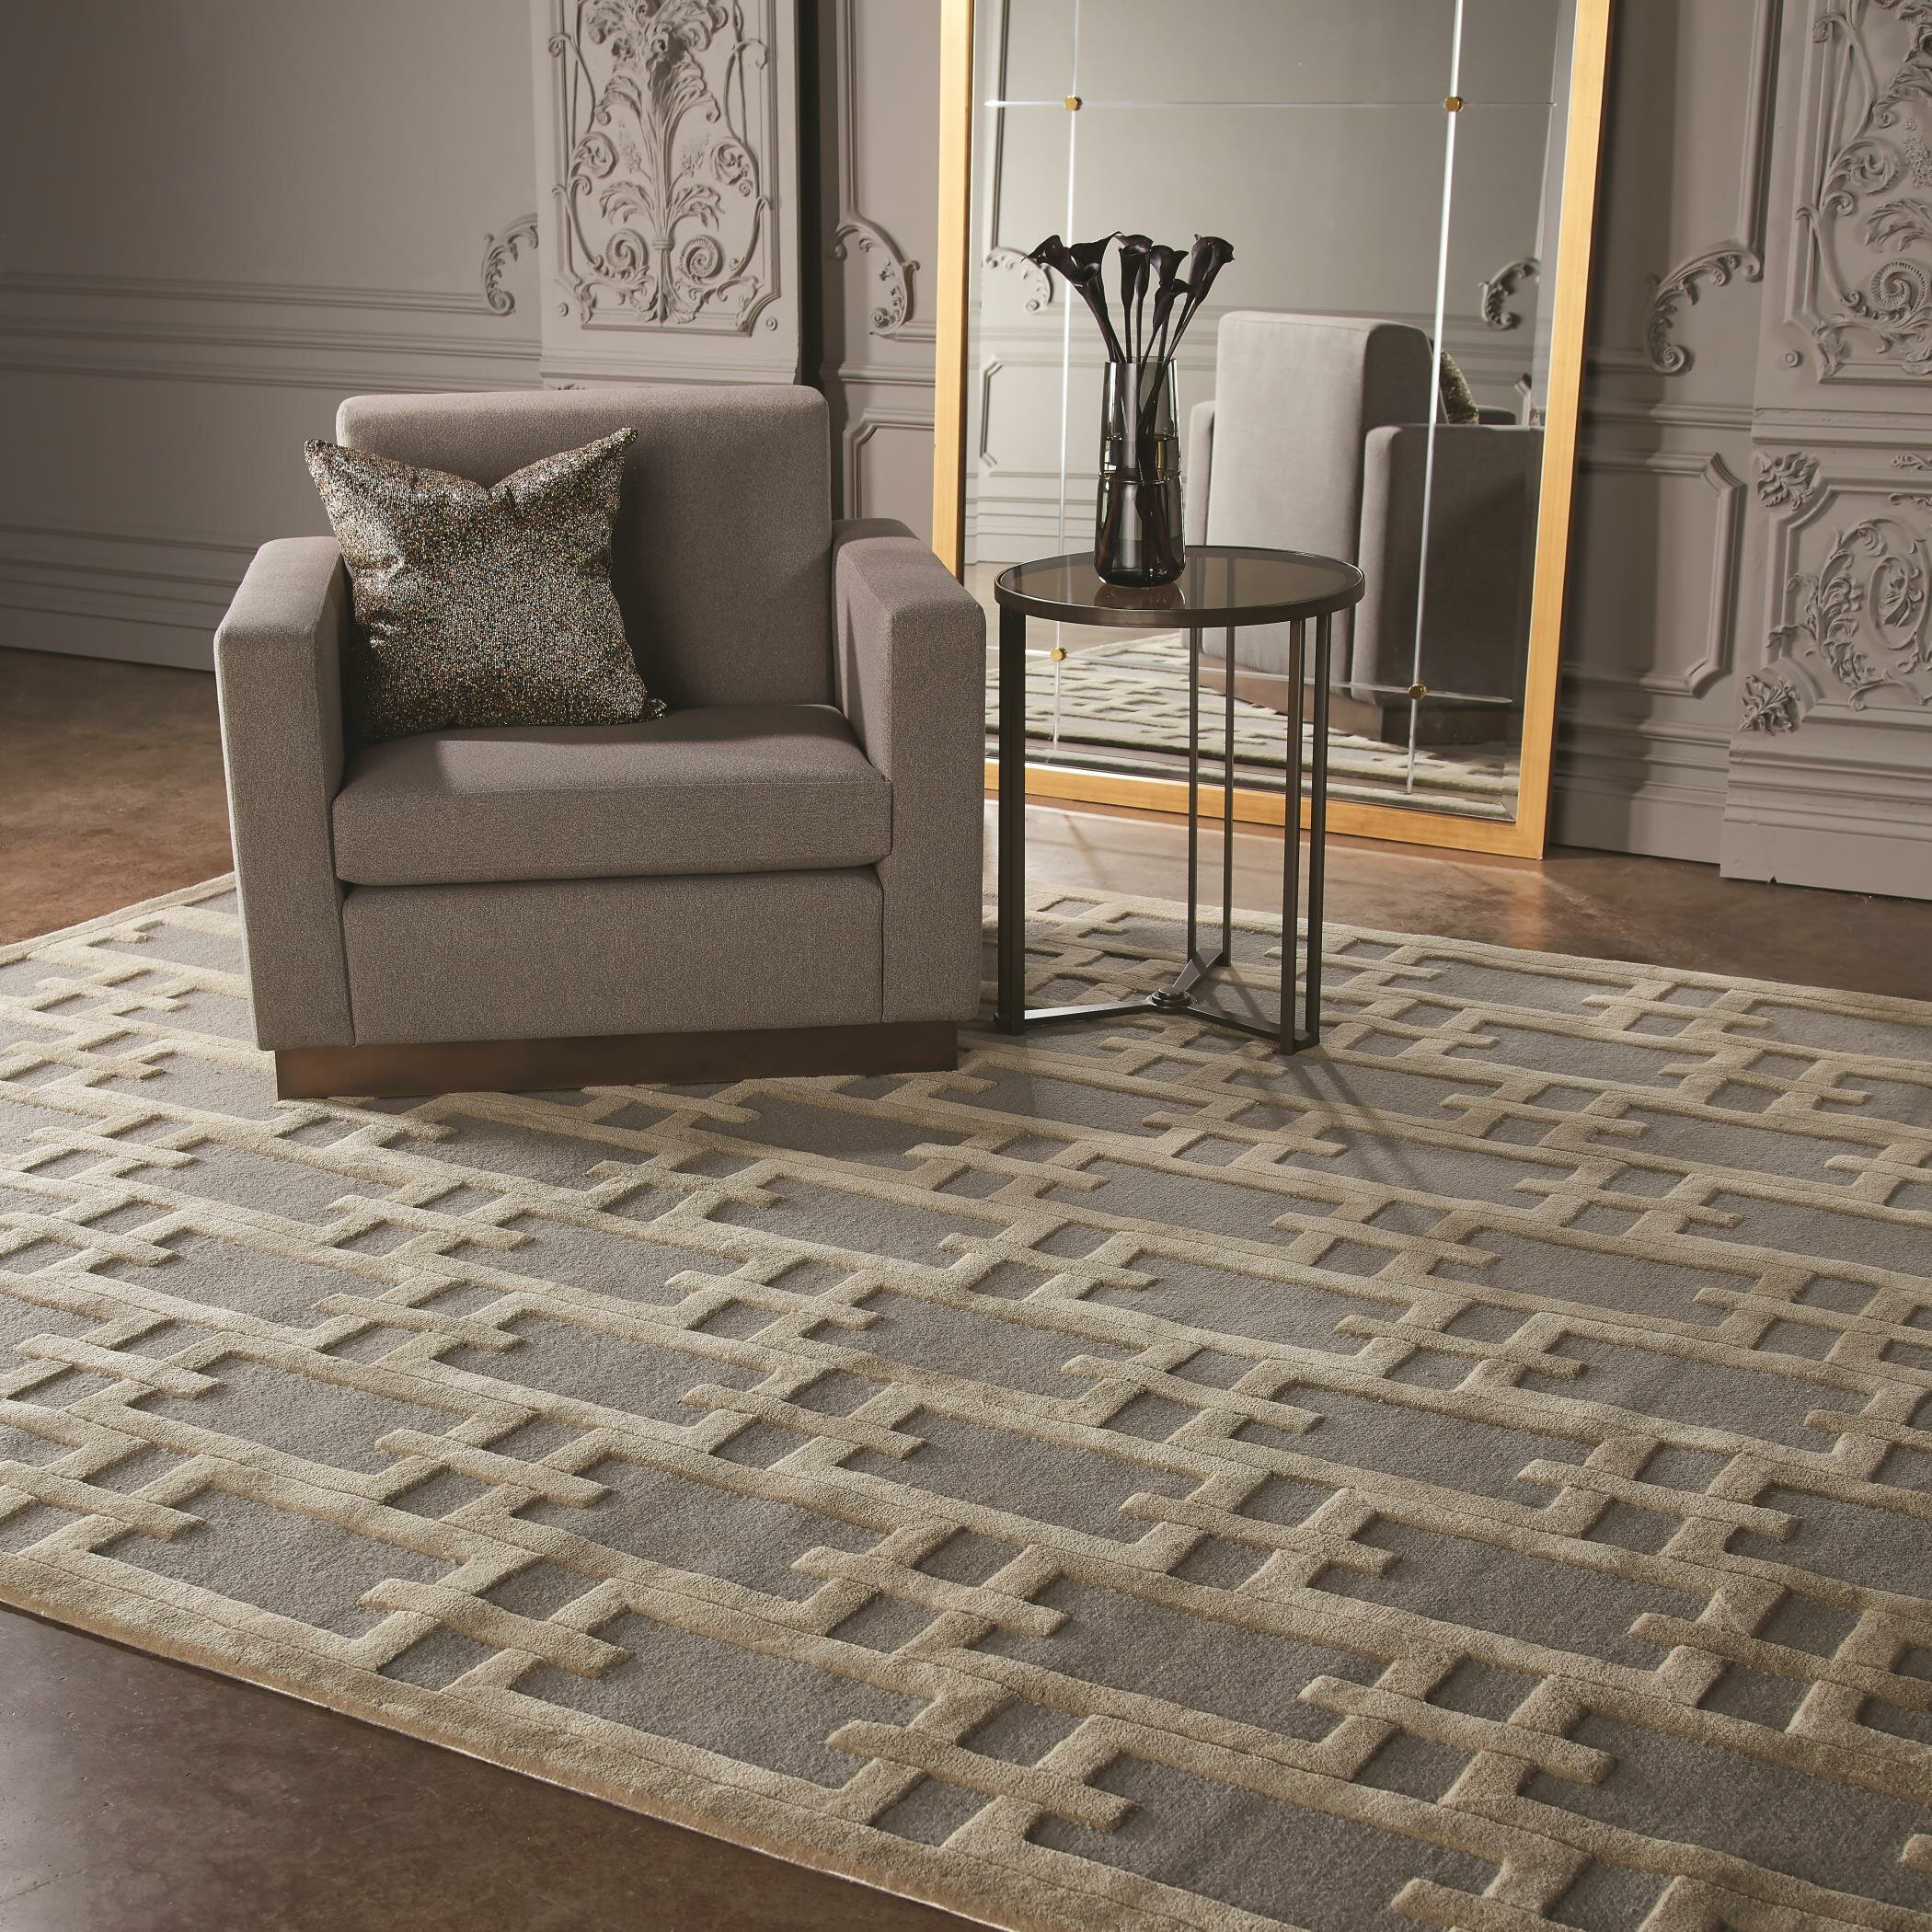 Global Views Link Console: Global Views Link Hand-Tufted Wool/Cotton Gray Area Rug